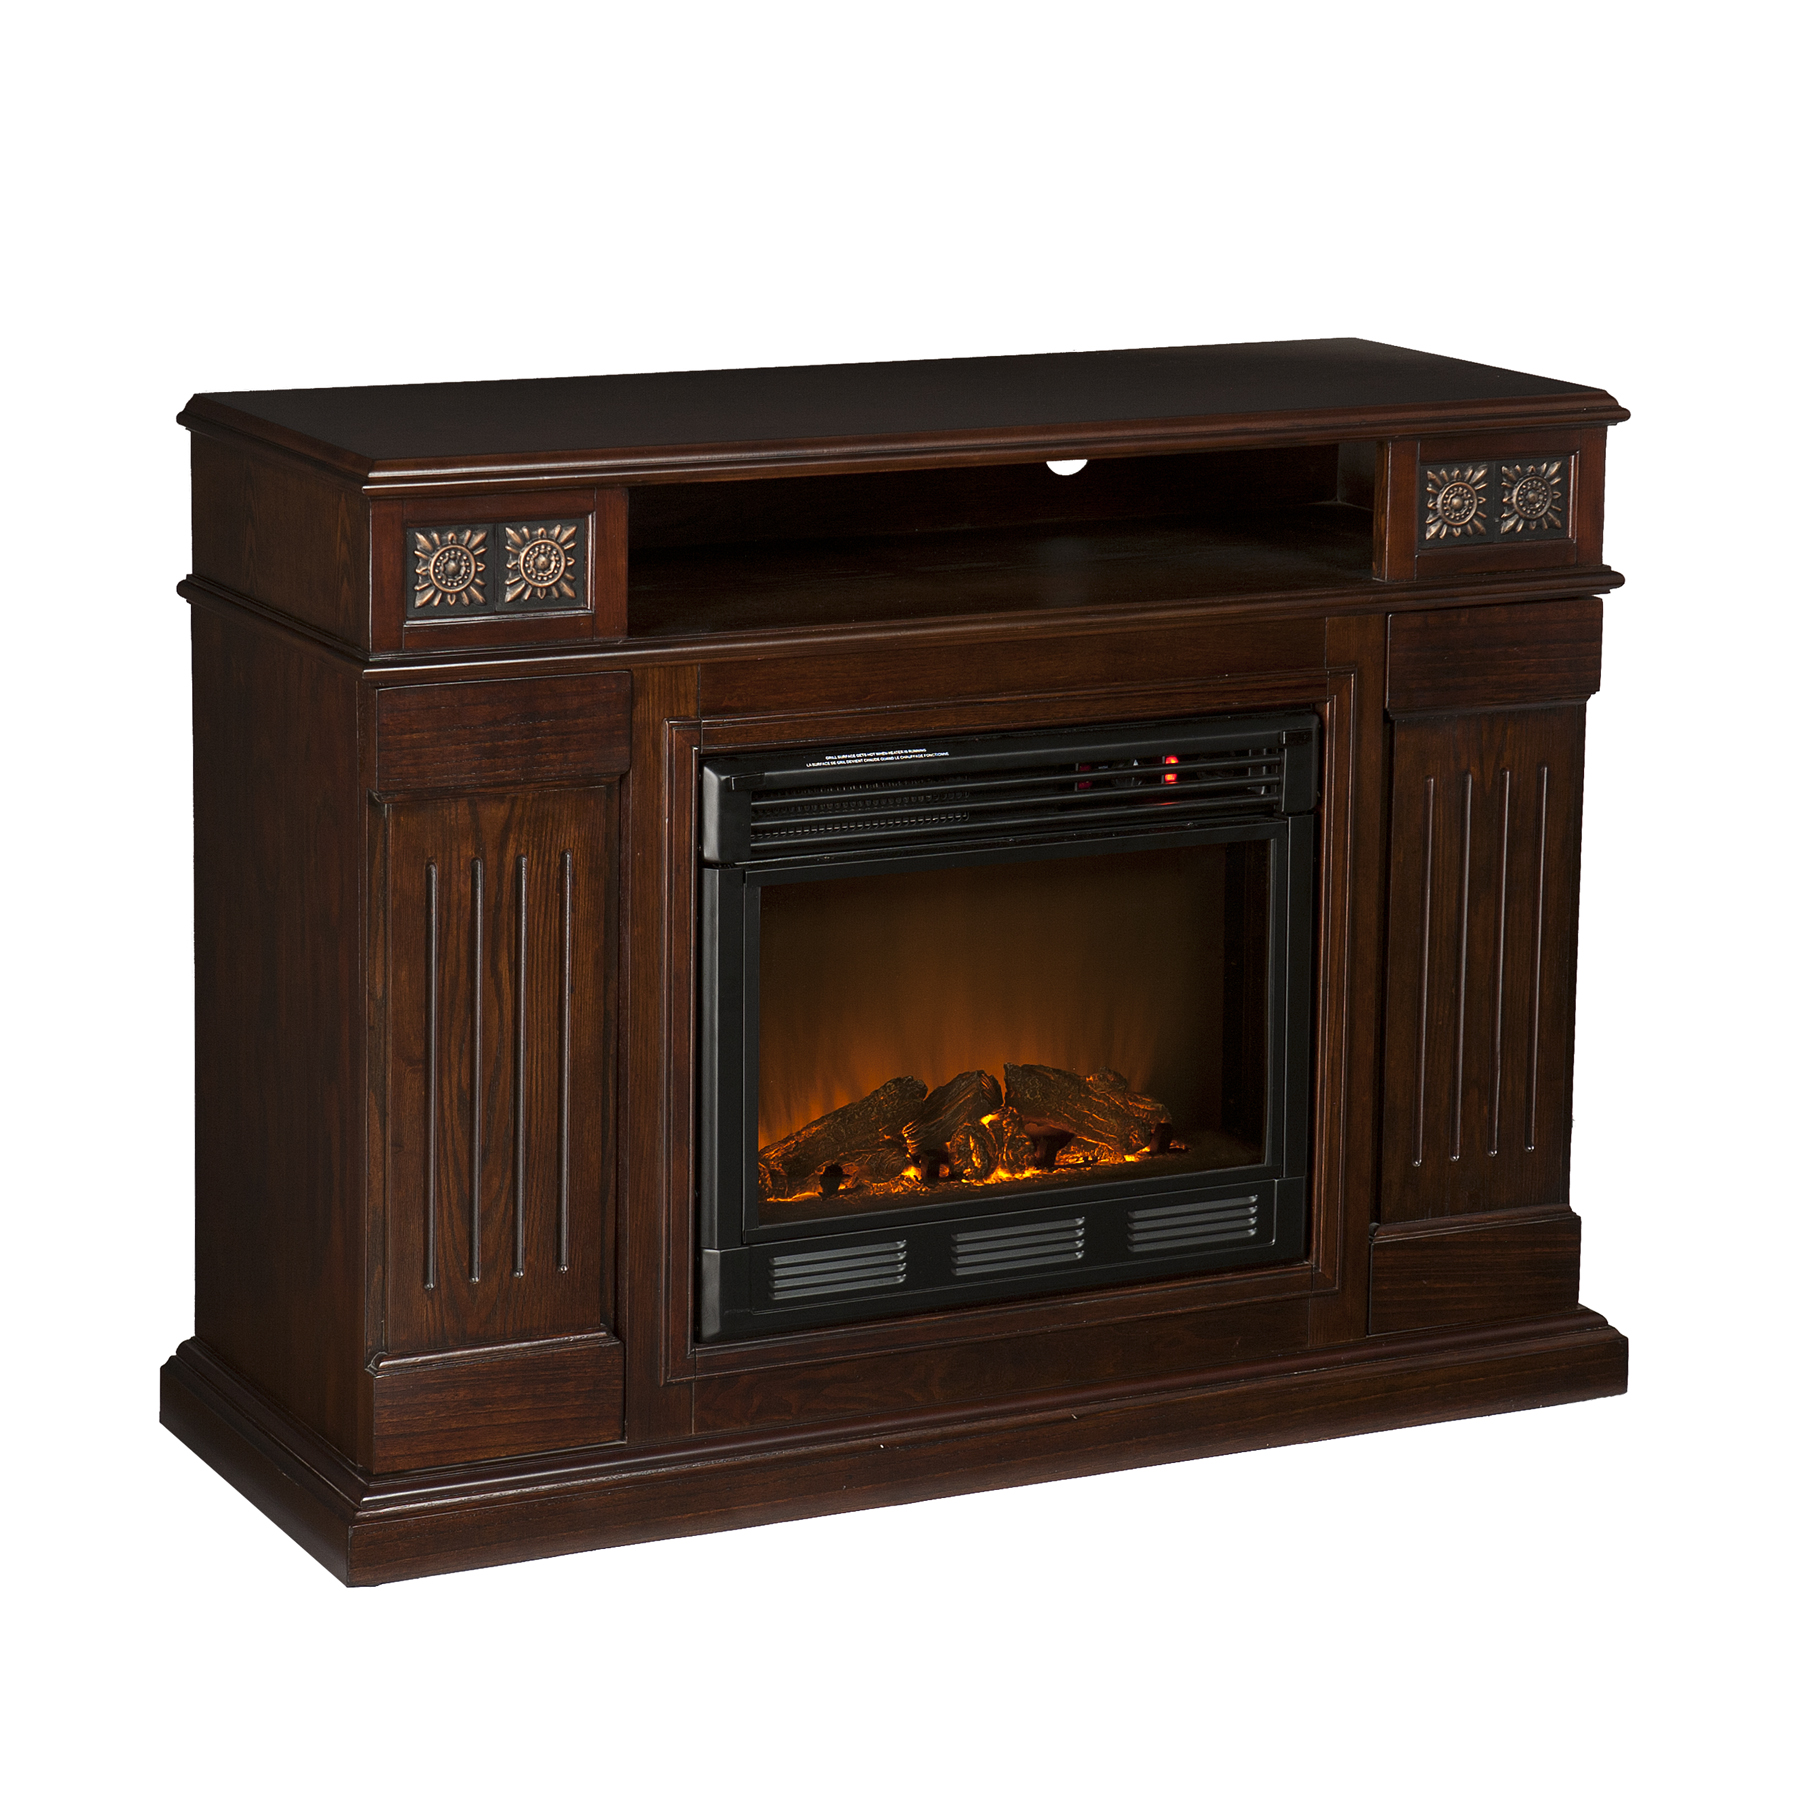 Holly Martin Clifton Media Electric Fireplace Espresso Holly Martin 37 066 084 6 12